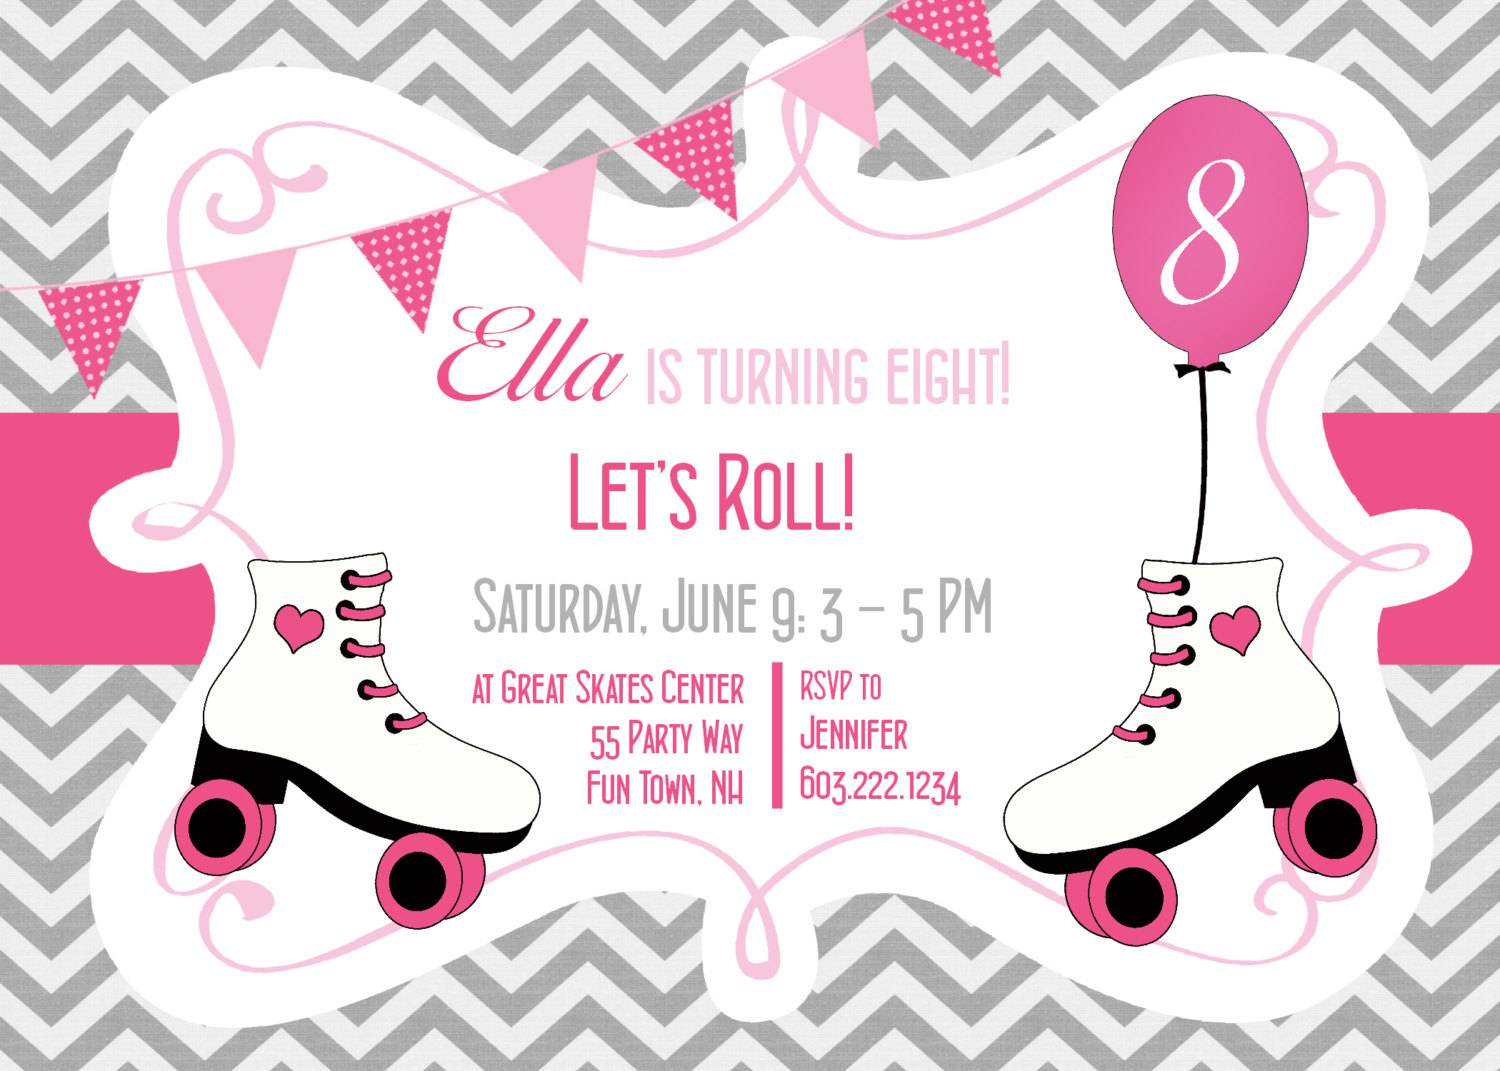 Ice Skating Party Invitations Free Printable Trend Skate Party - Free Printable Skating Invitations